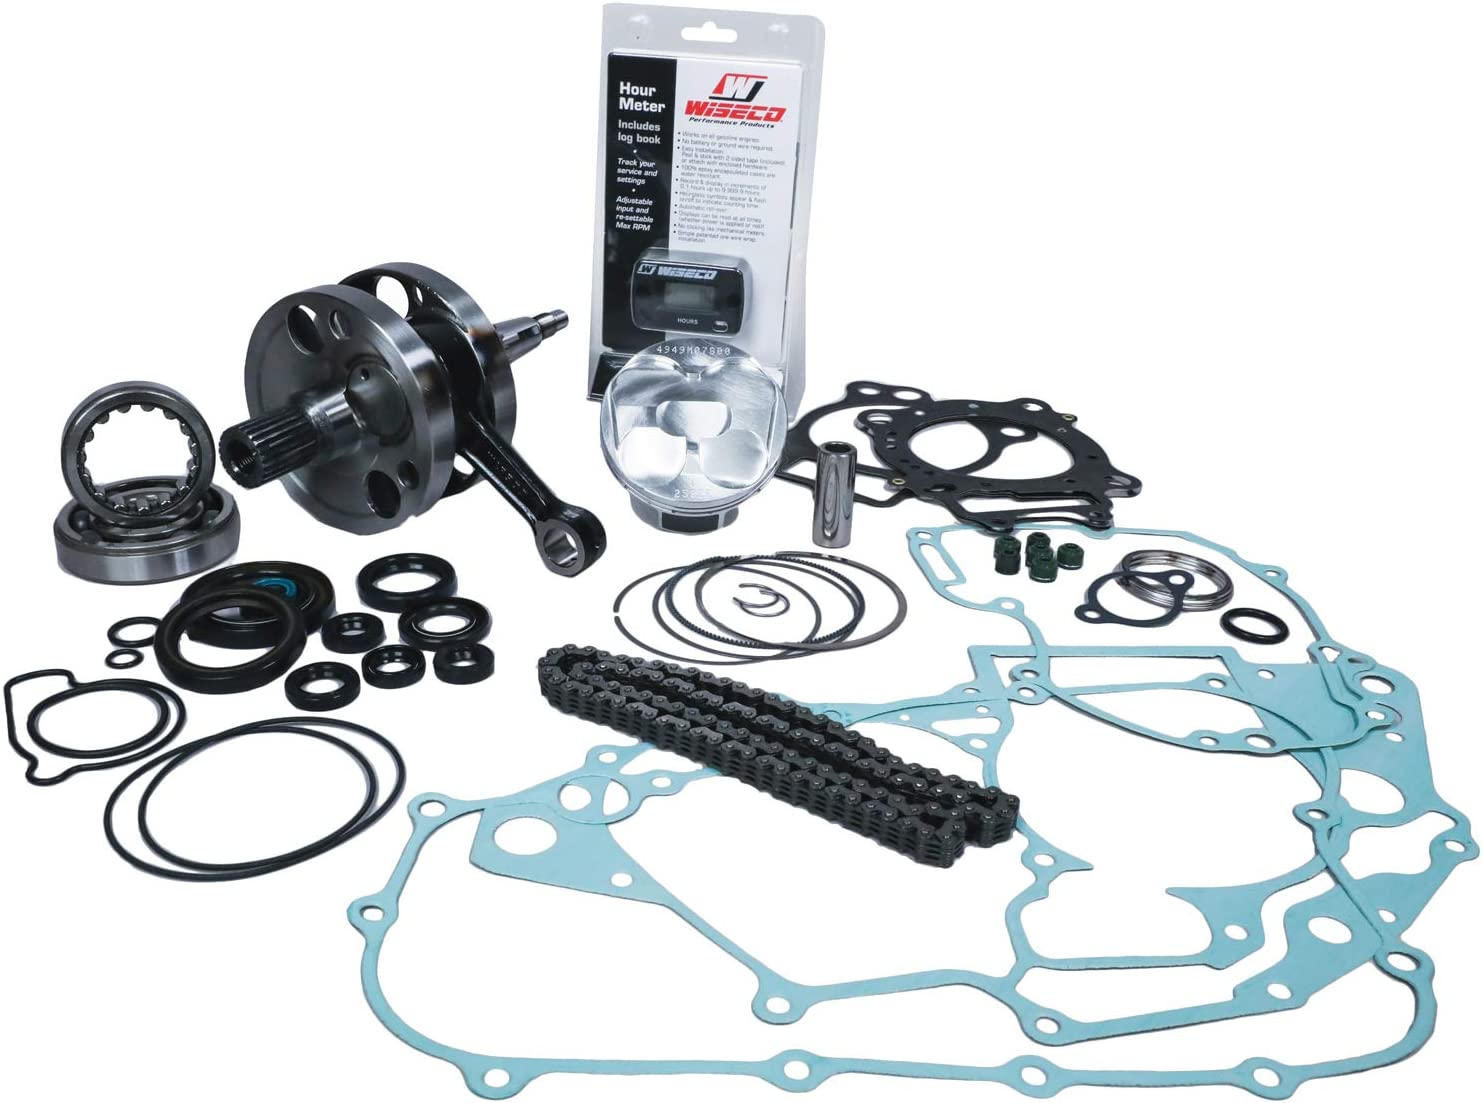 Wiseco PWR159-100 Opening large release Max 58% OFF sale Garage Buddy Complete Kit Engine Rebuild